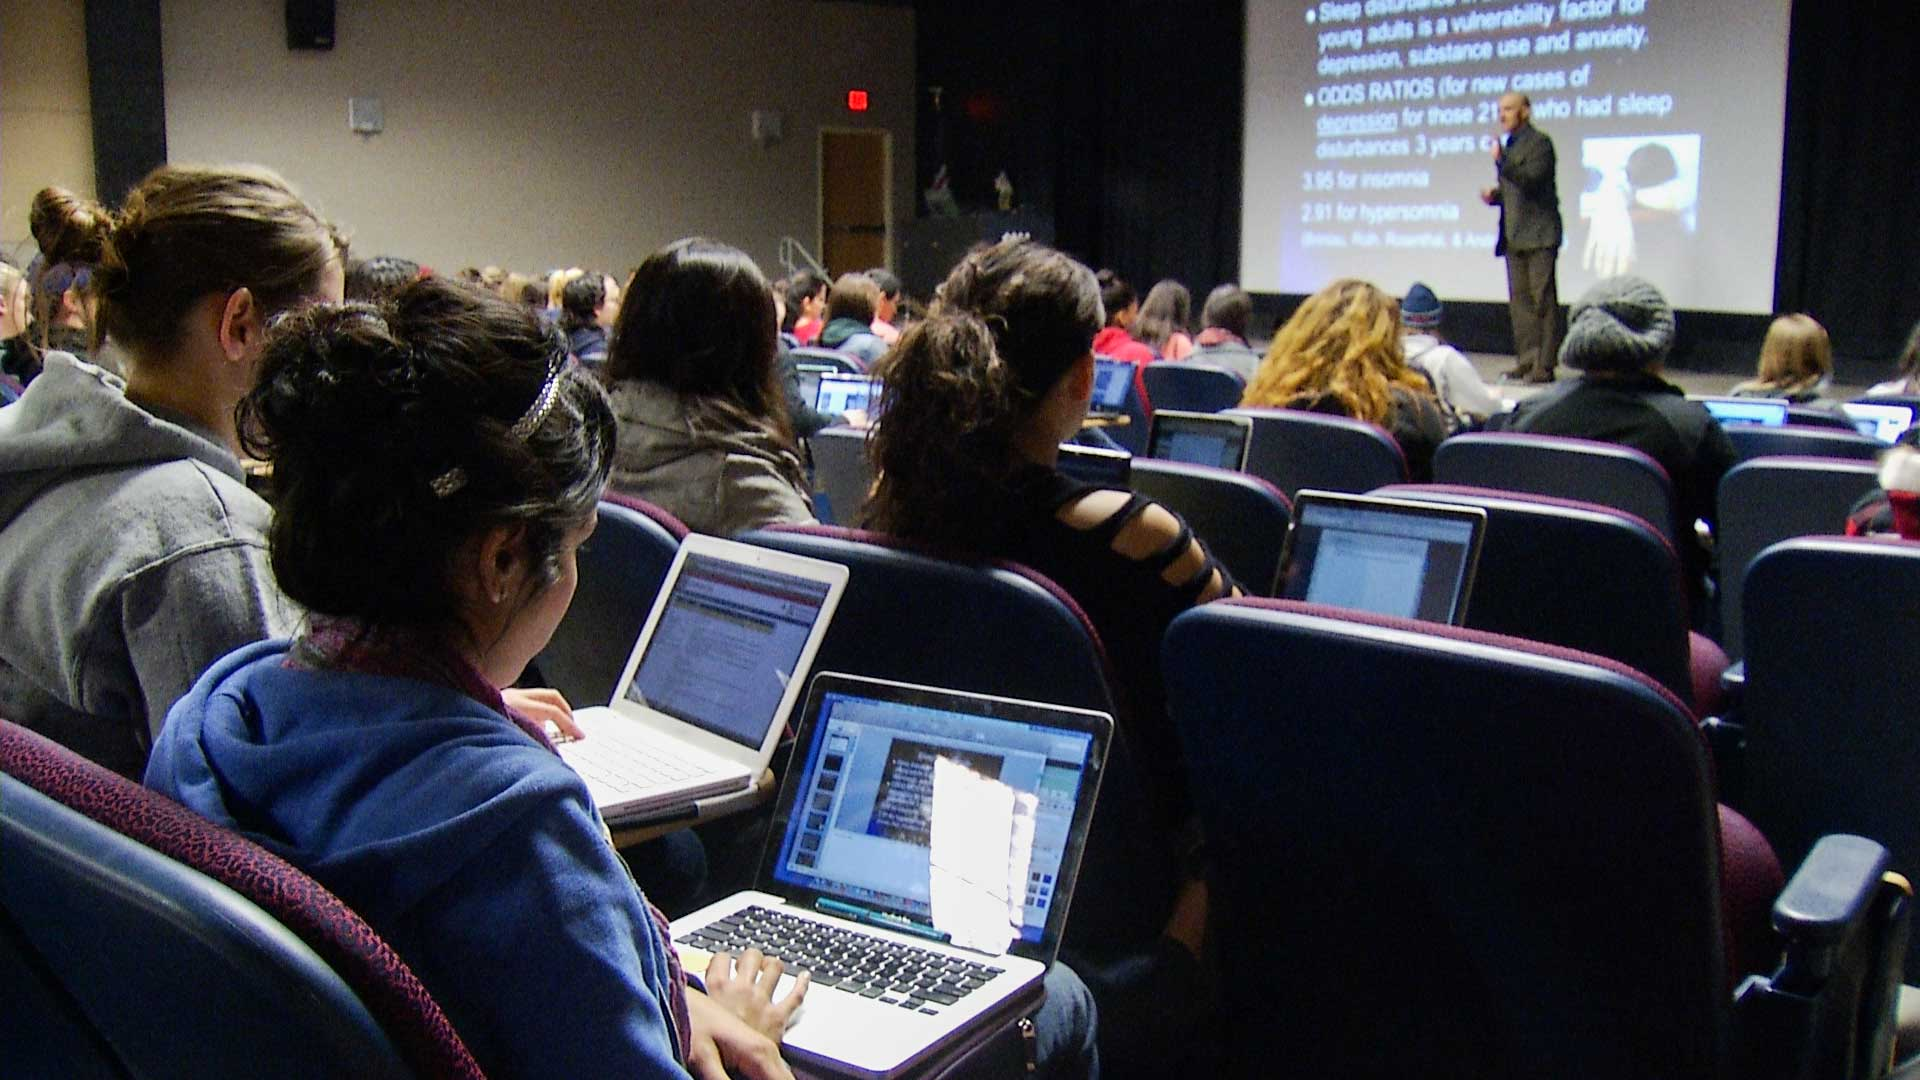 Students follow a lecture at the University of Arizona.